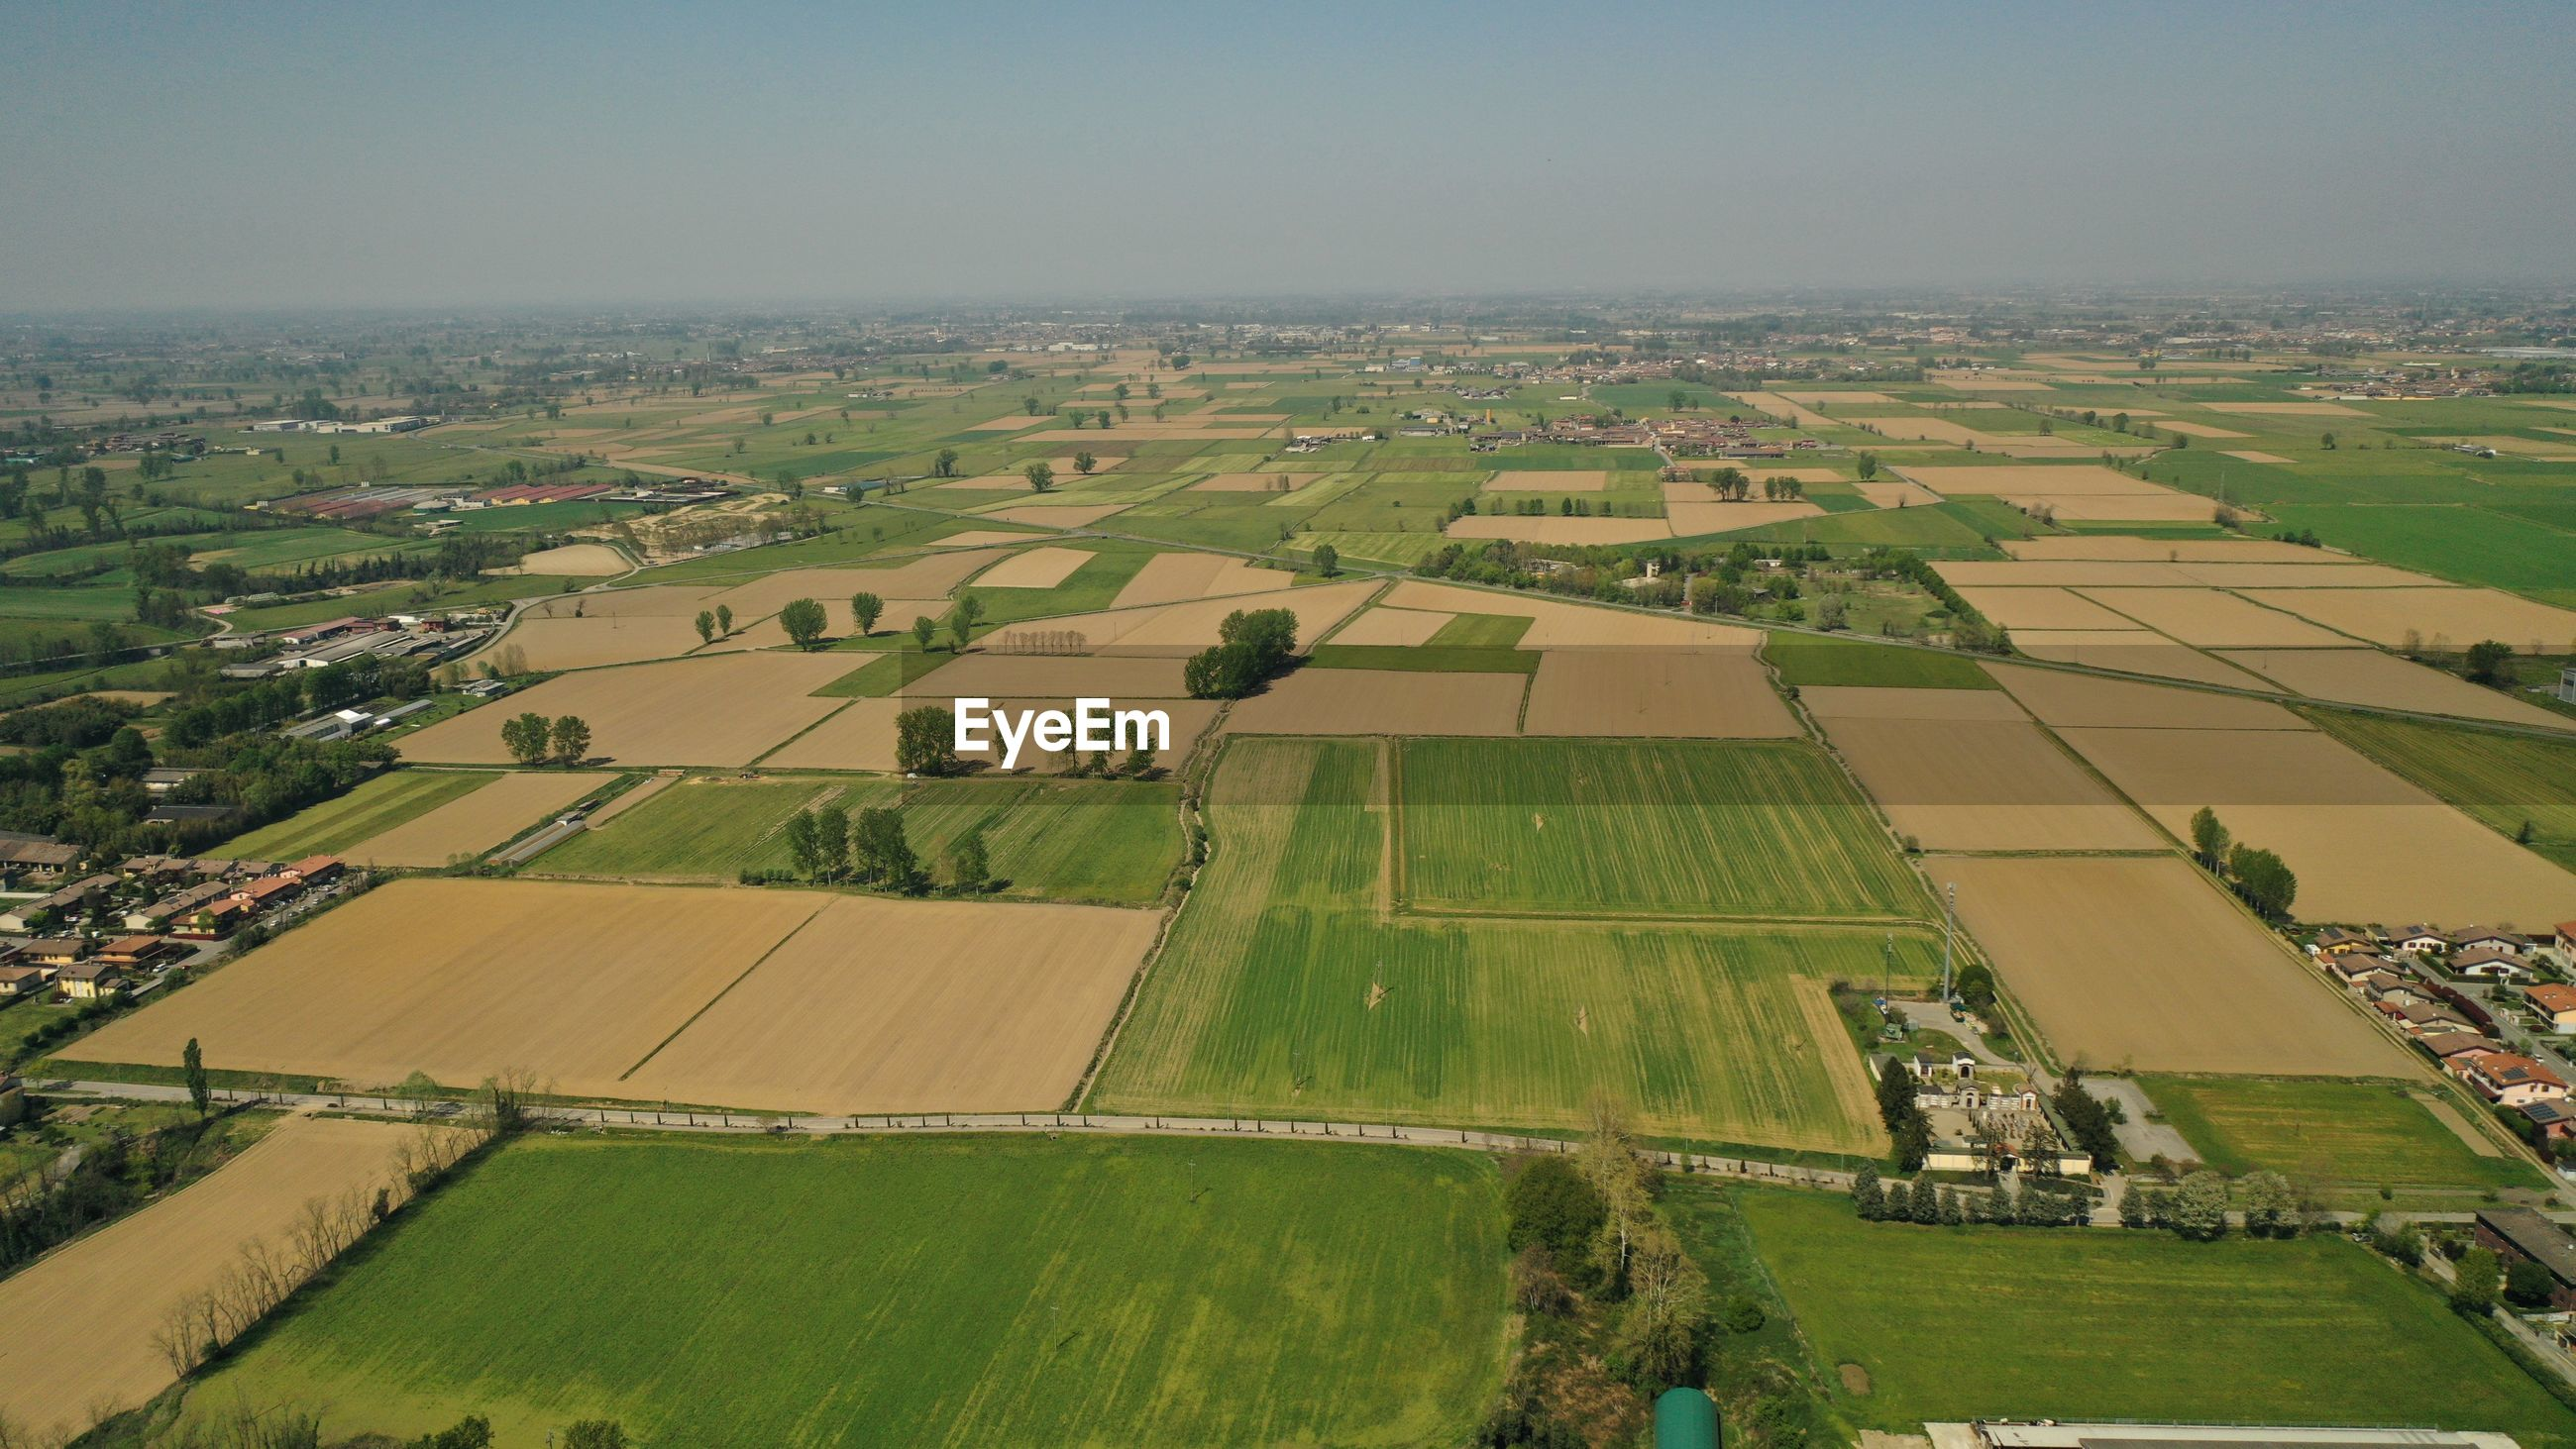 Aerial view of agricultural field against sky